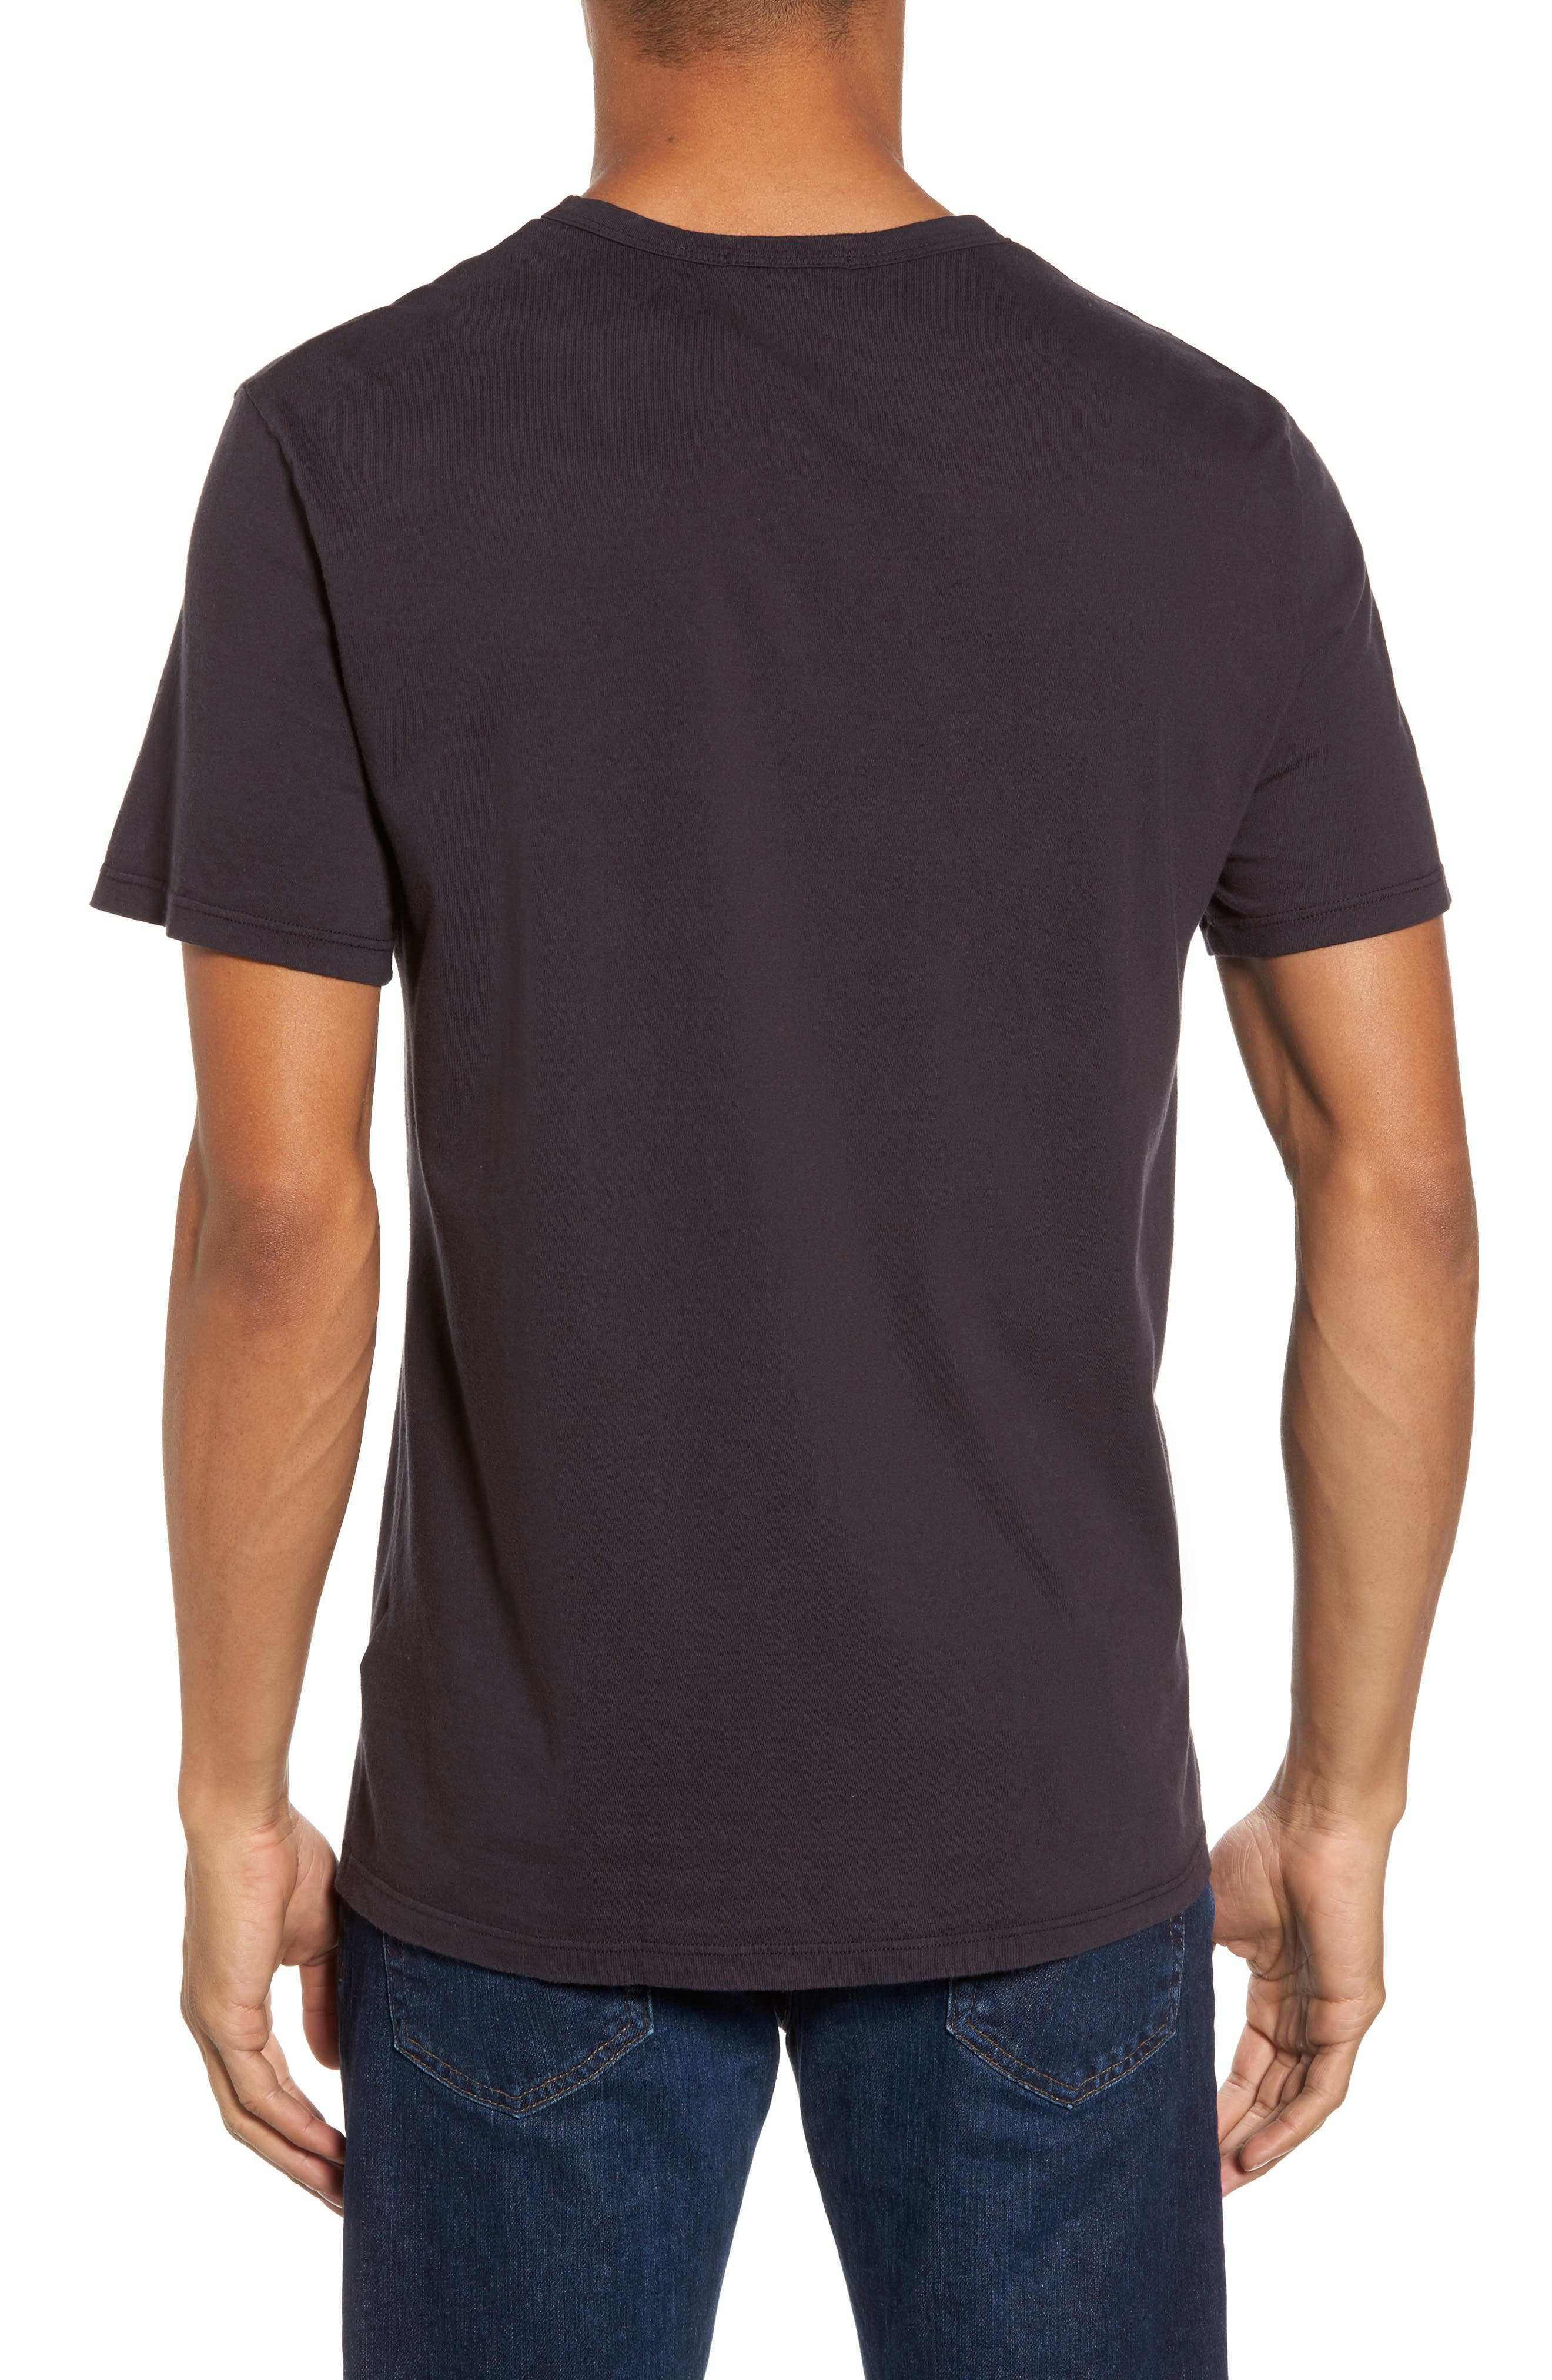 Alternate Image 2  - James Perse Suvin Crewneck T-Shirt